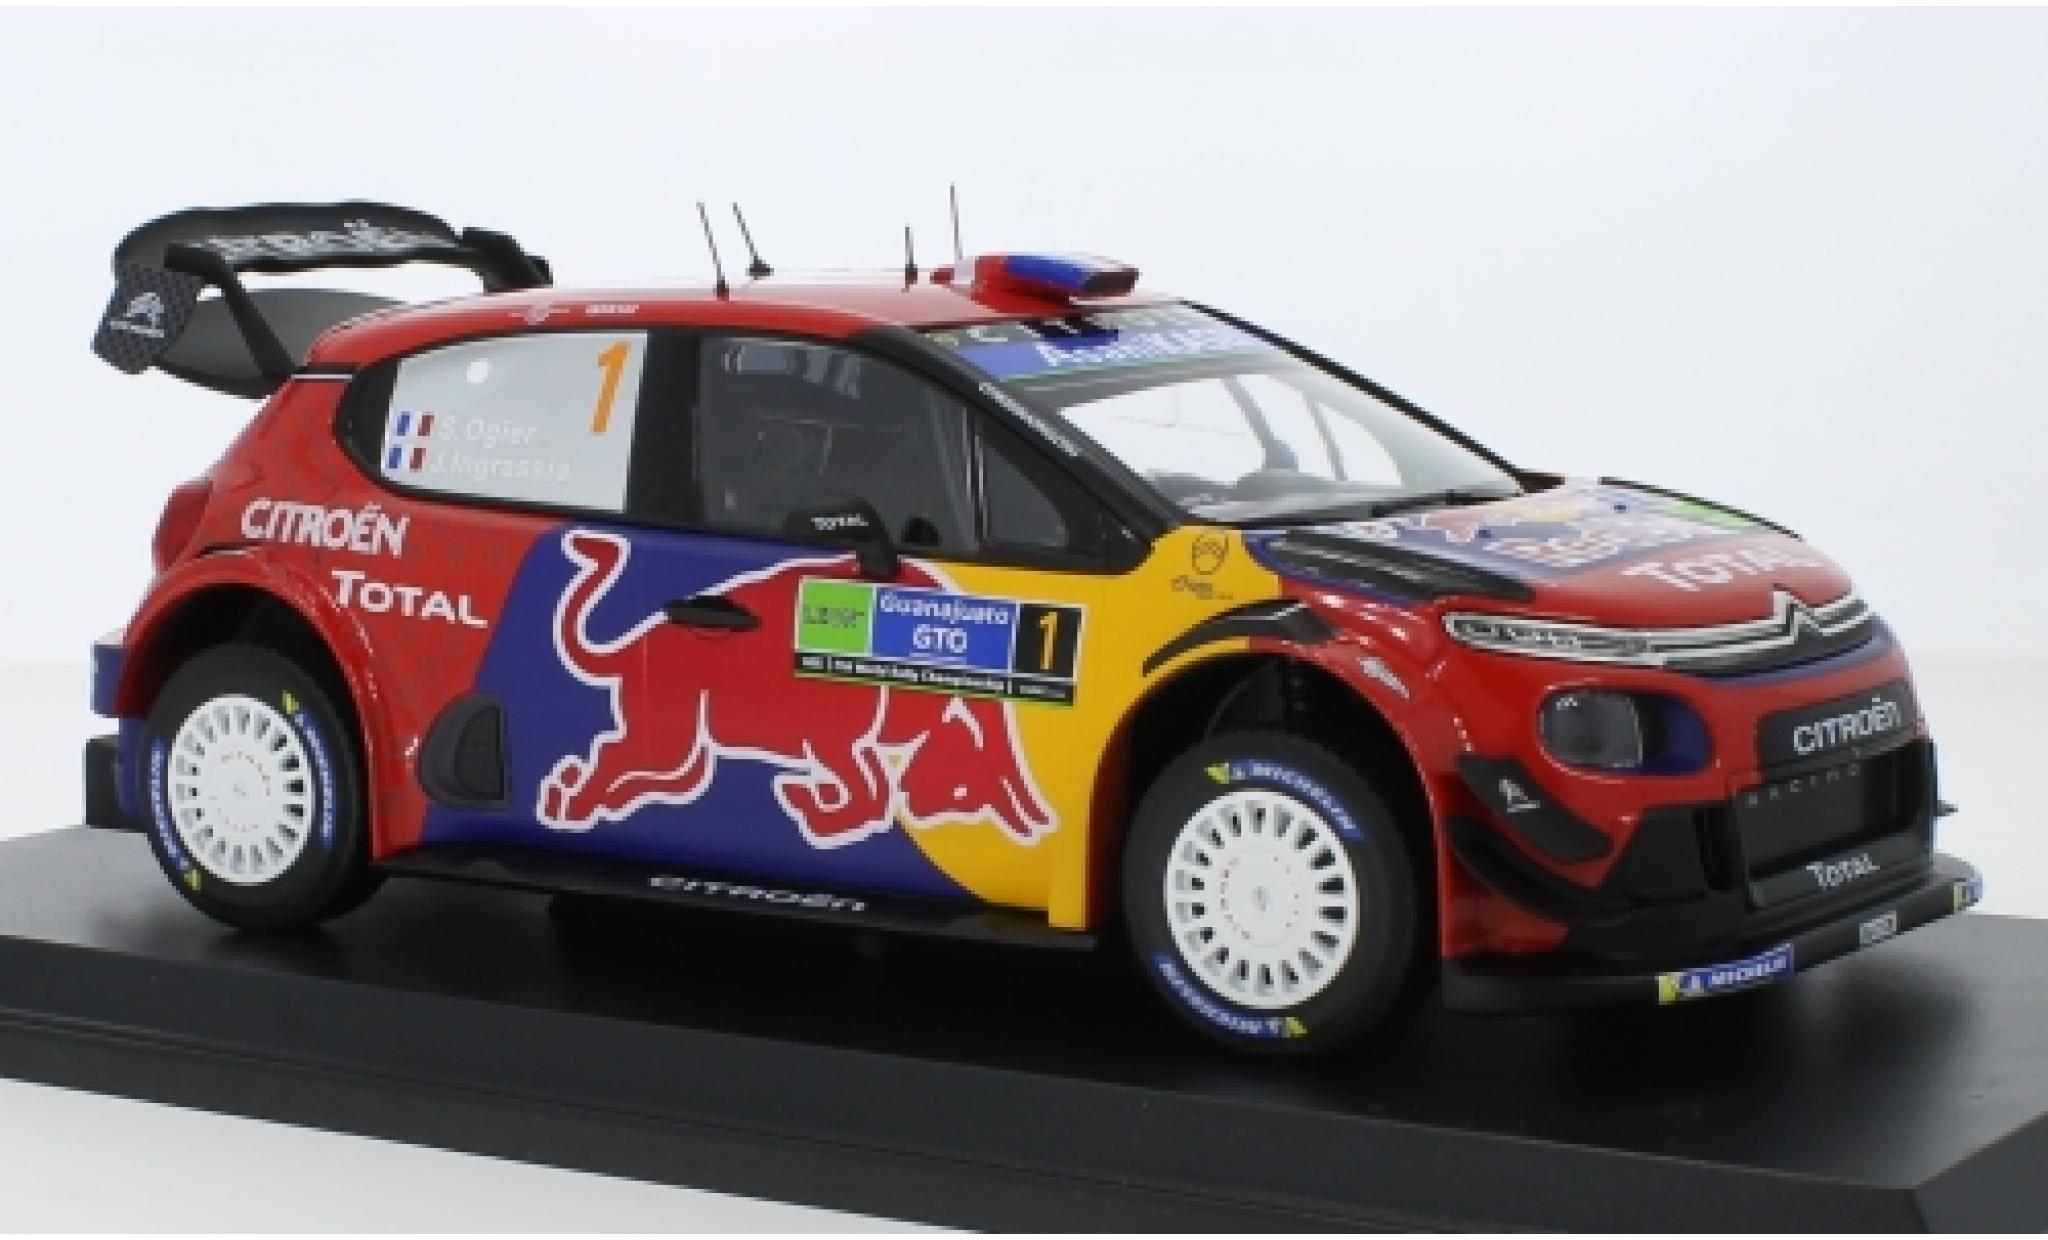 Citroen C3 1/18 Norev WRC No.1 Red Bull / Total WRC Rally Mexico 2019 S.Ogier/J.Ingrassia